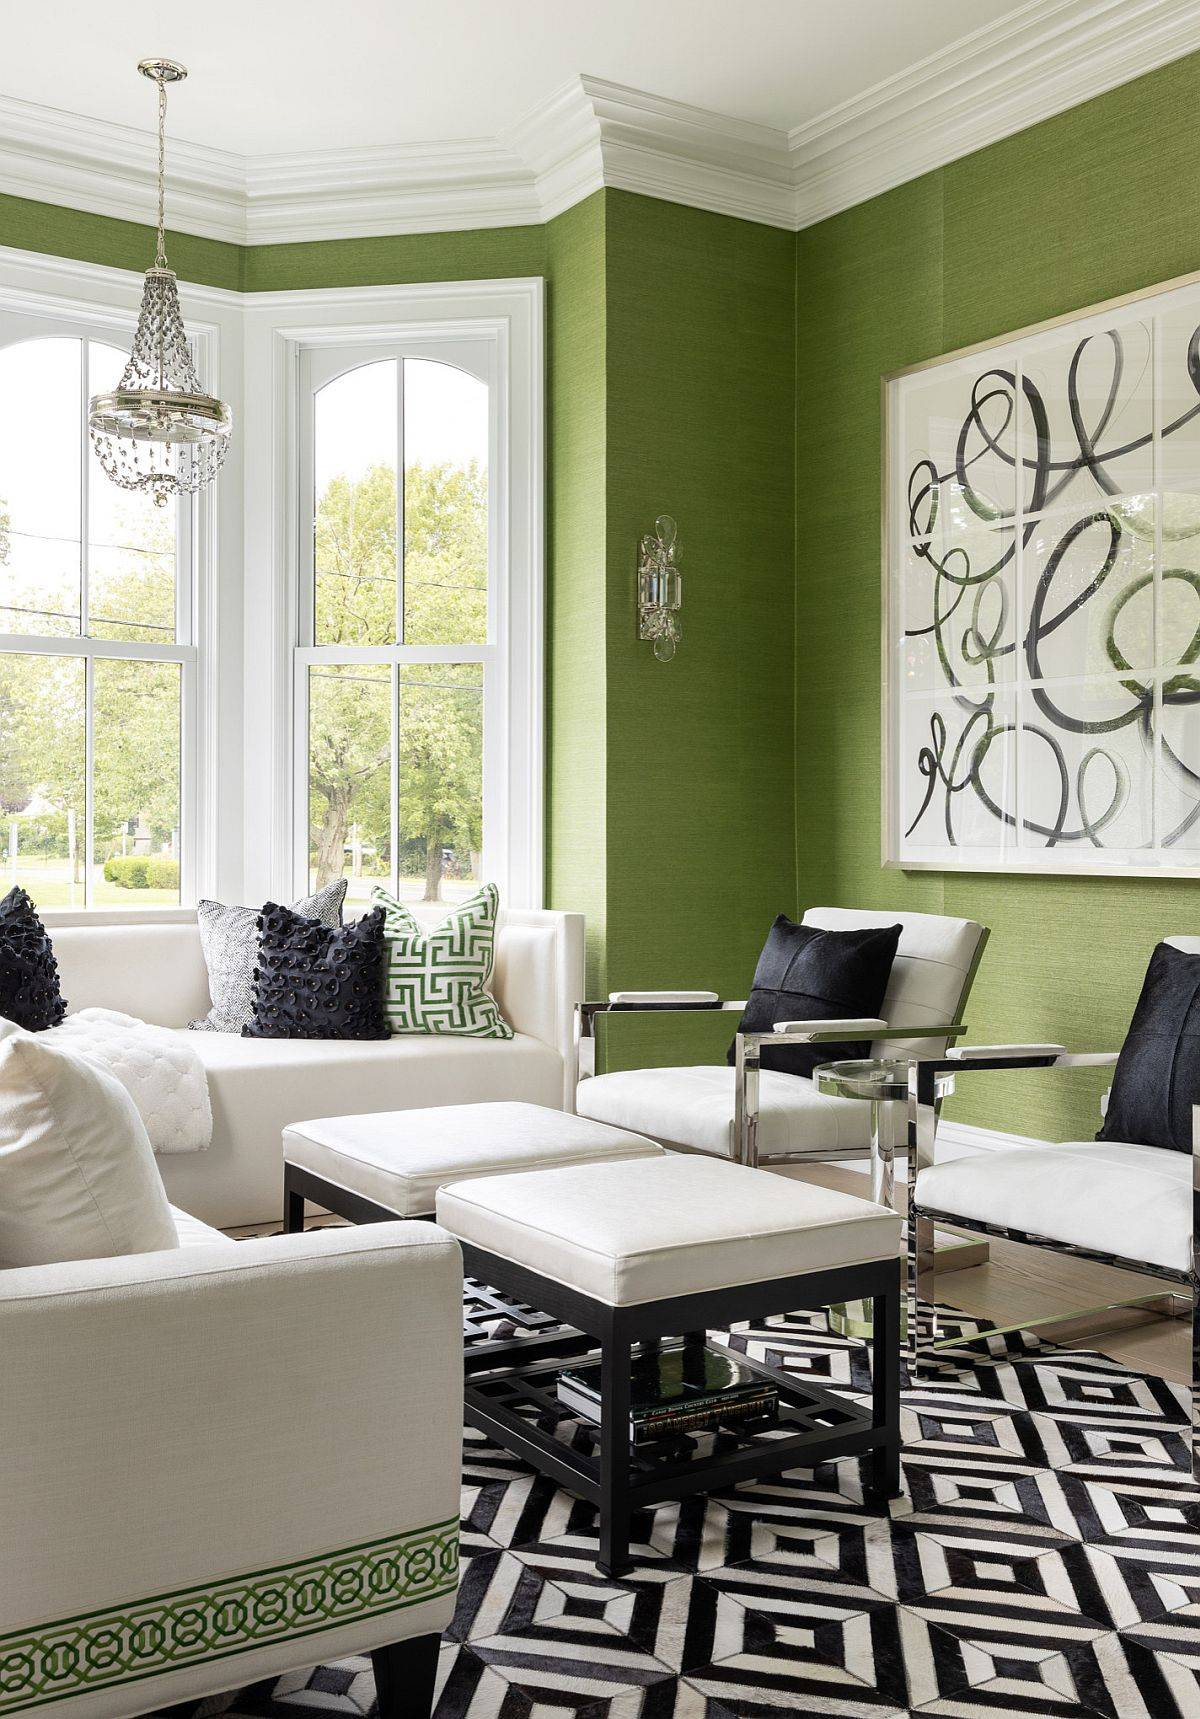 Grasscloth wallcovering in green for the spacious living room with white trims